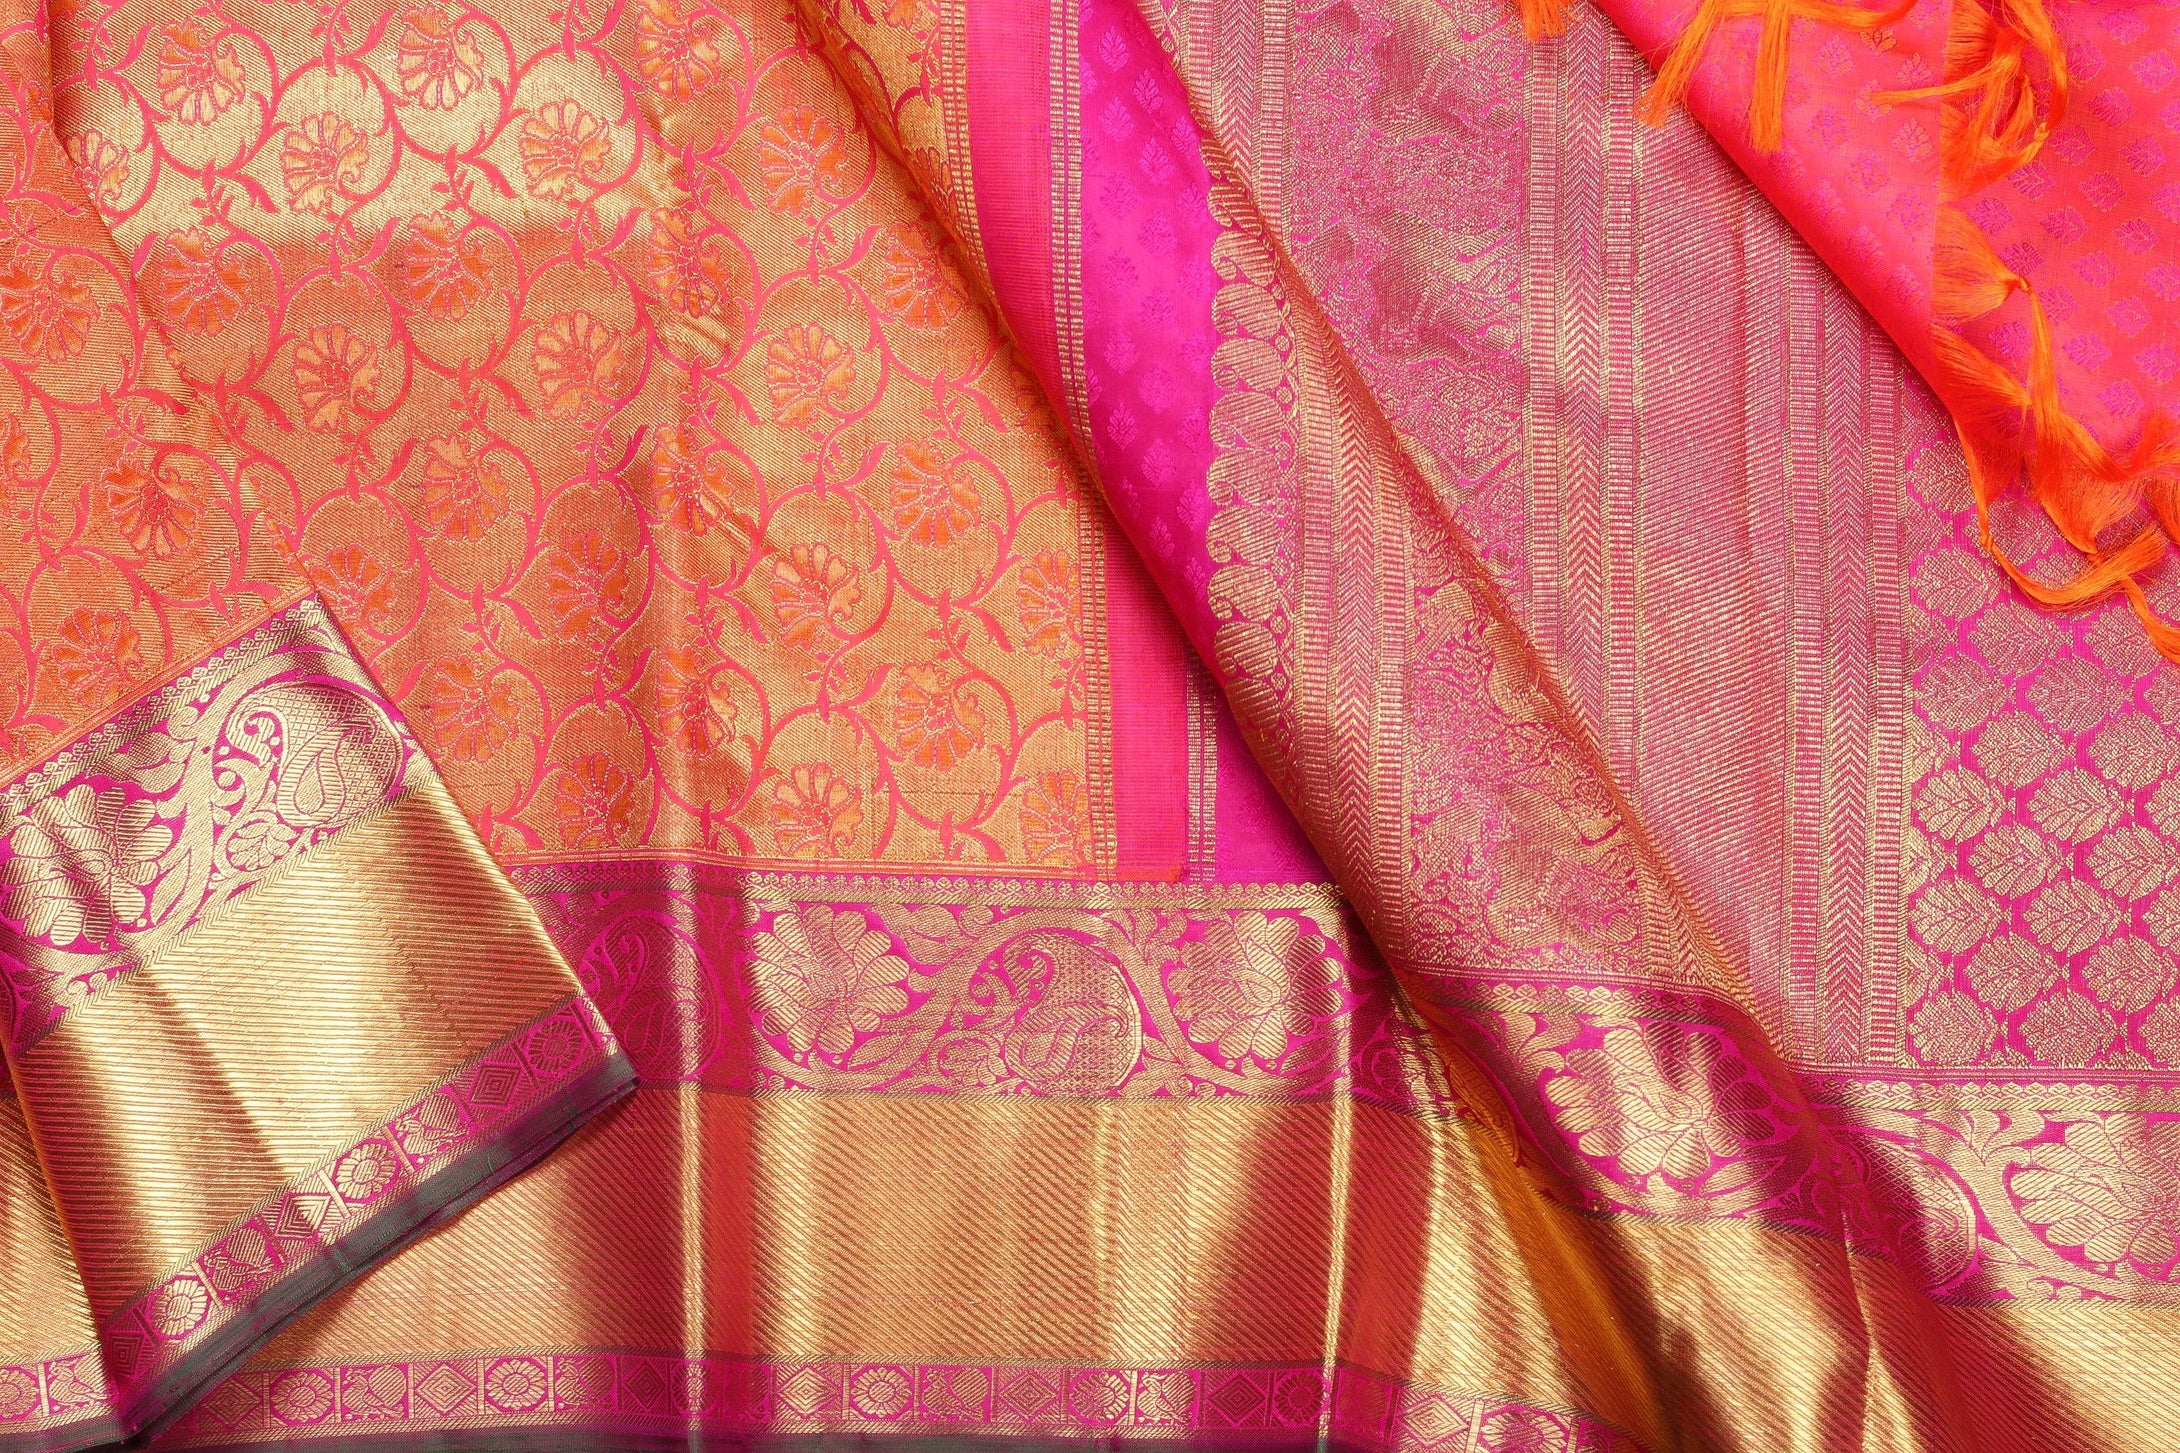 Traditional Design Handwoven Pure Silk Kanjivaram Saree - Bridal Saree - PBR 005 - Archives